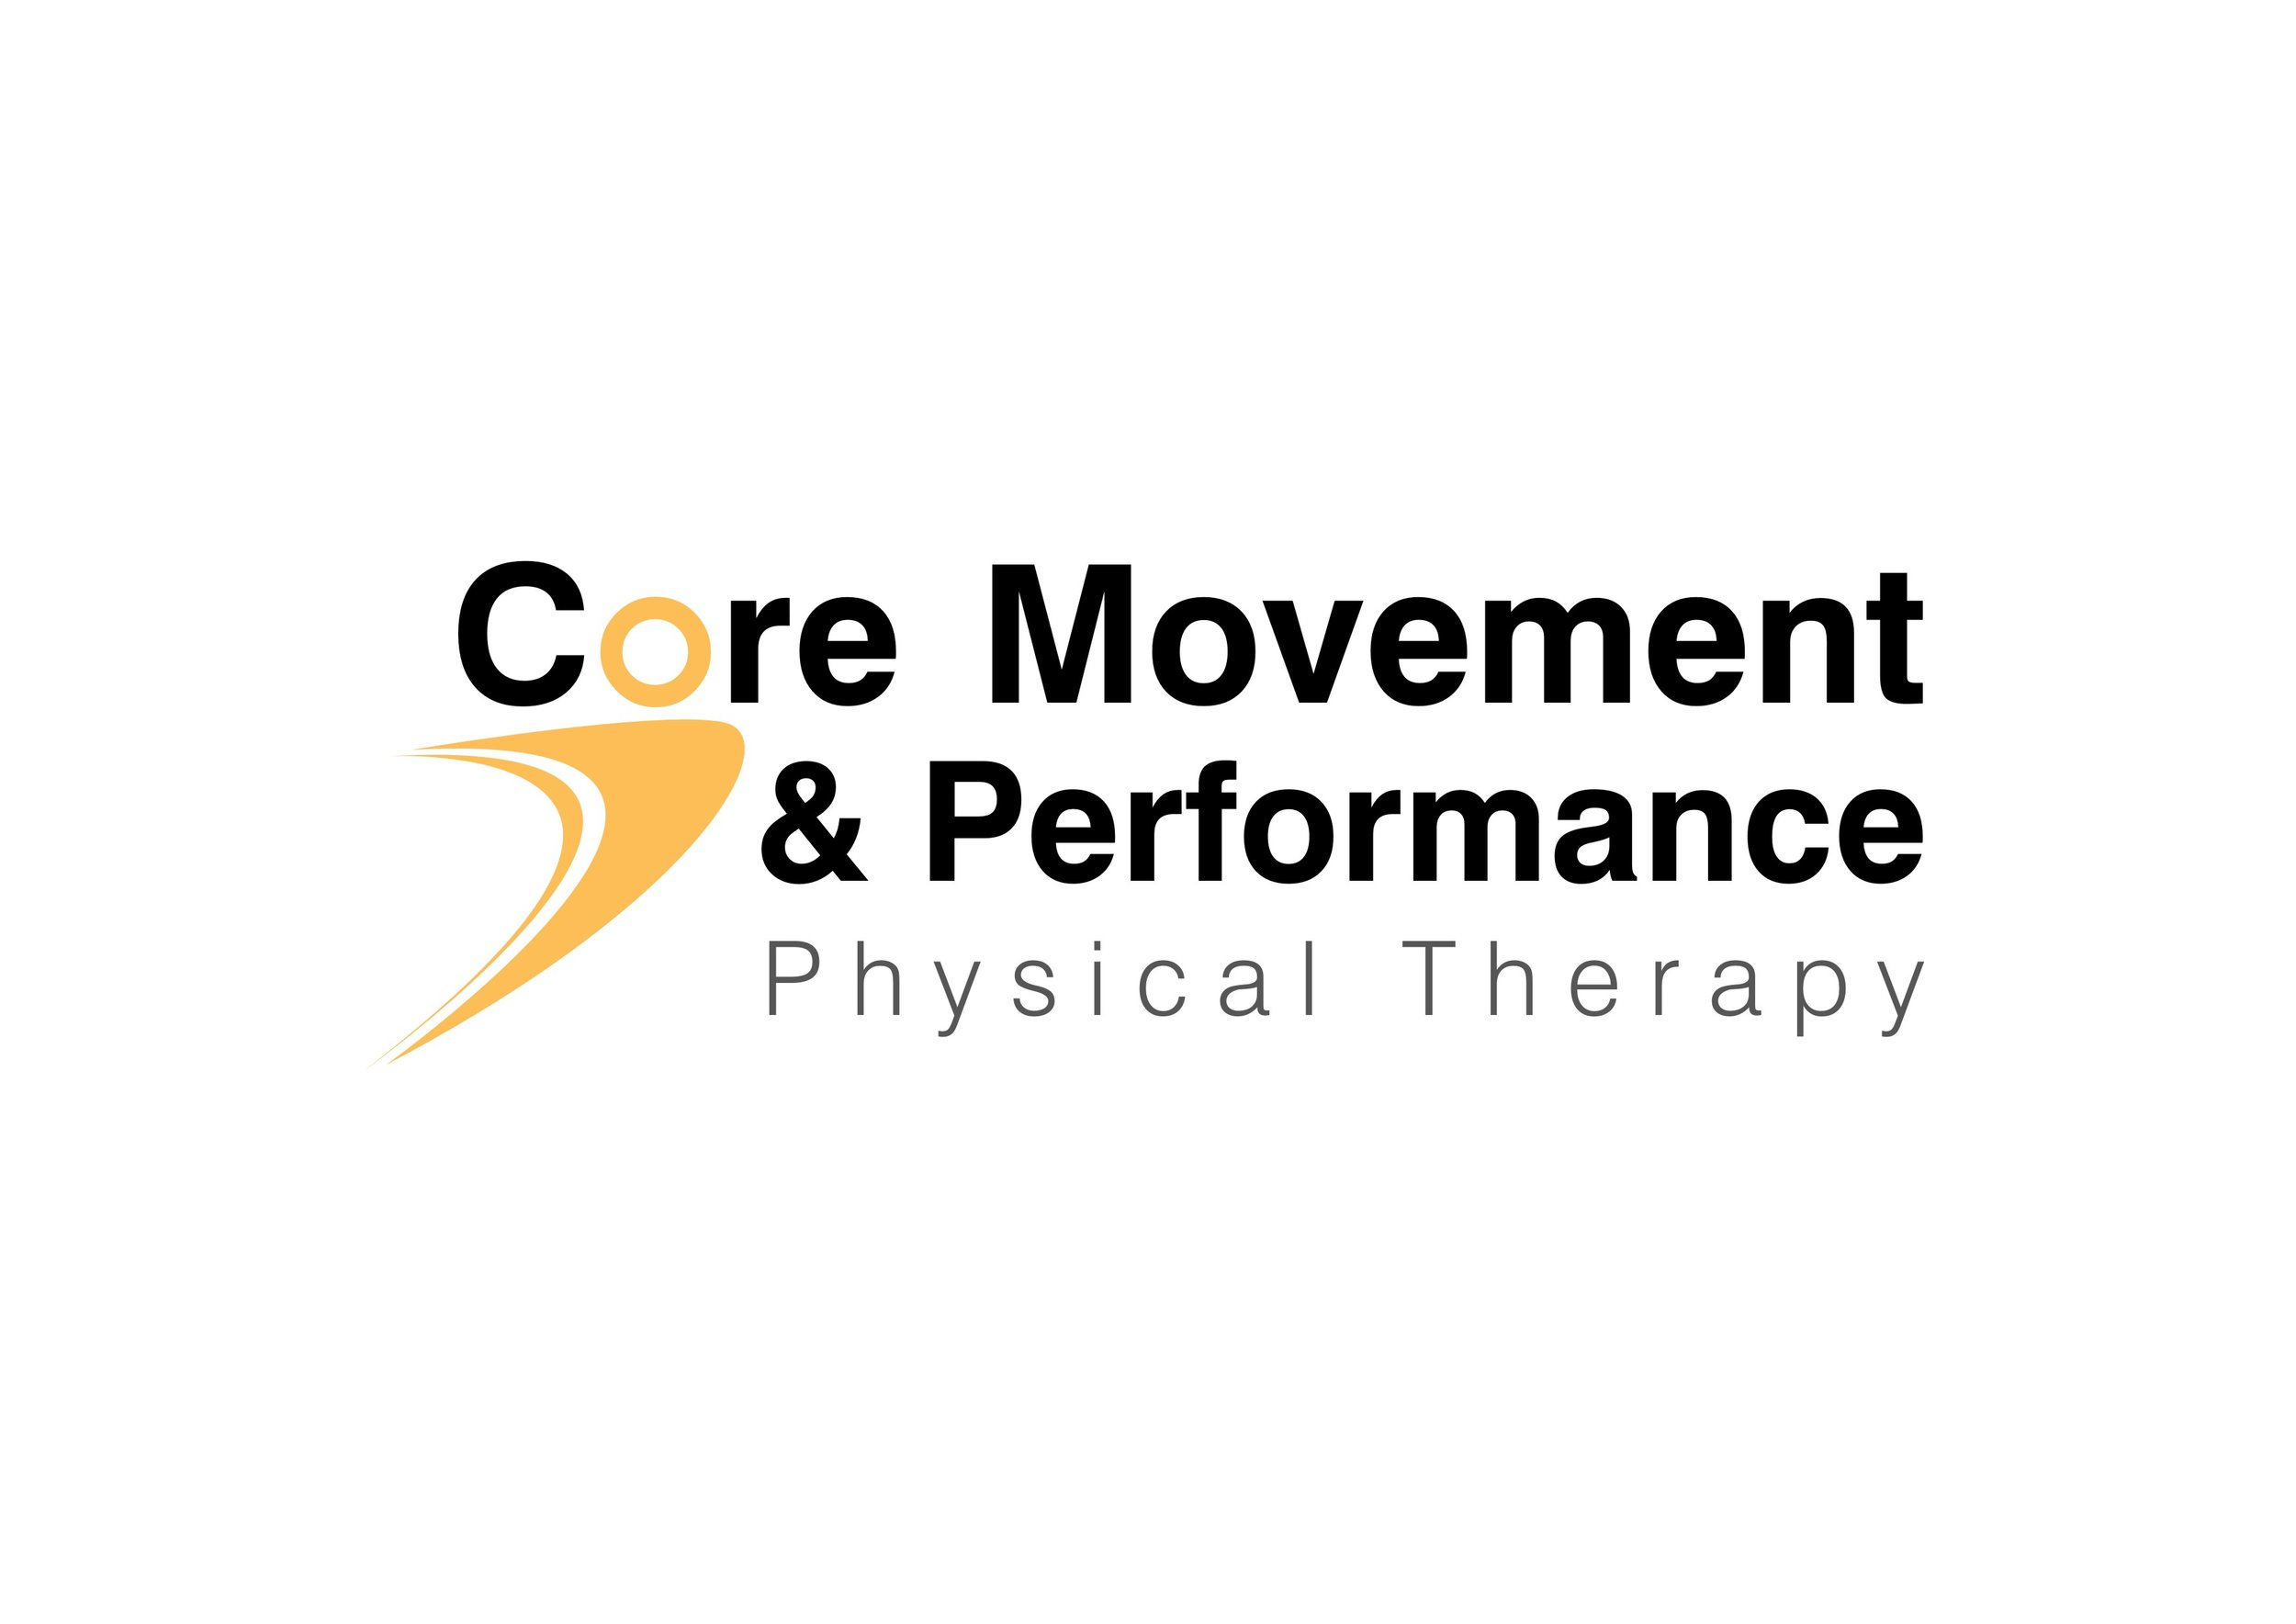 Now Available: Private Sessions in Waltham, MA - Private coaching in person is a great way to develop a coaching connection, and make big changes. Come try a session at the beautiful Core Movement & Performance PT, and walk out feeling great!E-mail Jeremy@FeinMovement.com to set up a session, or scroll down and book right here.